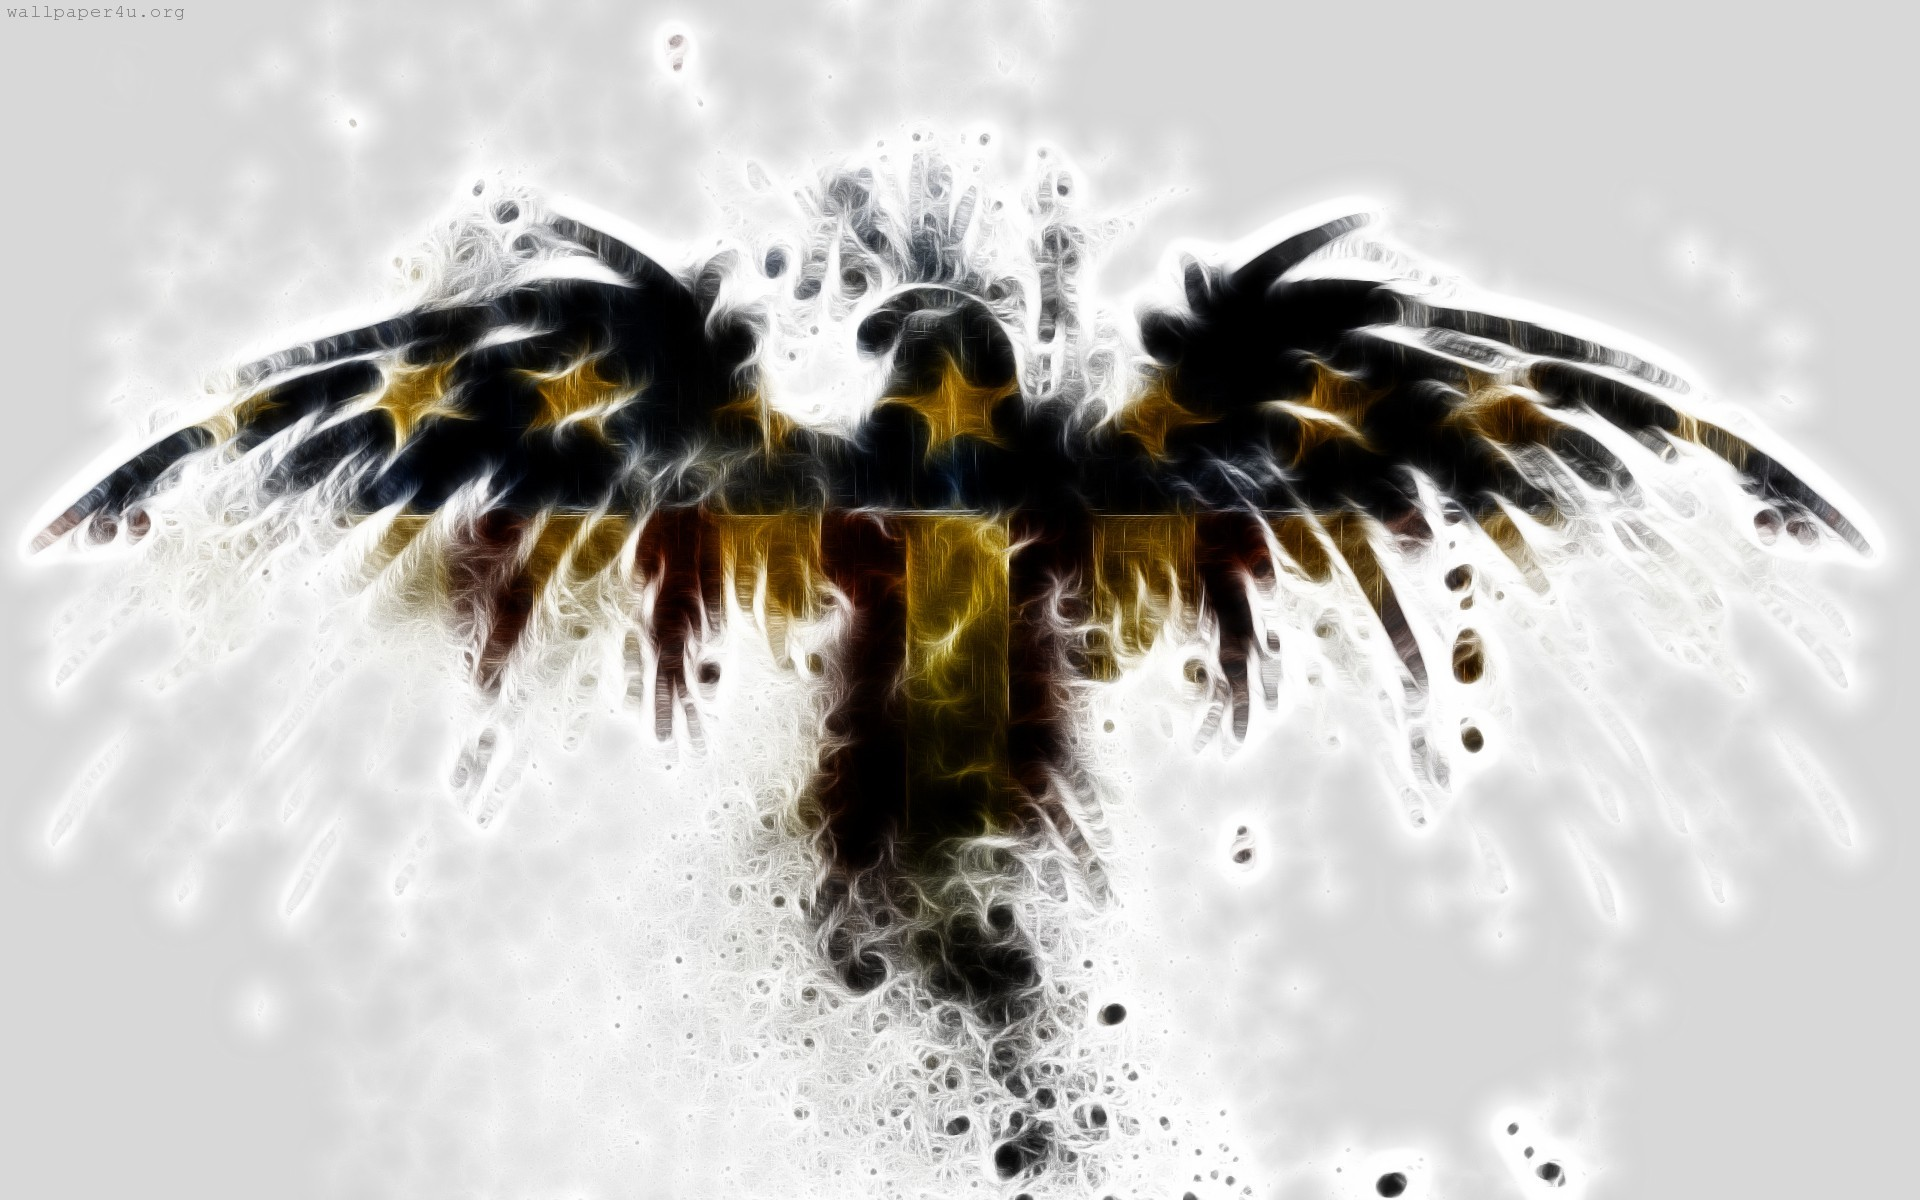 american flag with eagle wallpaper 70 images